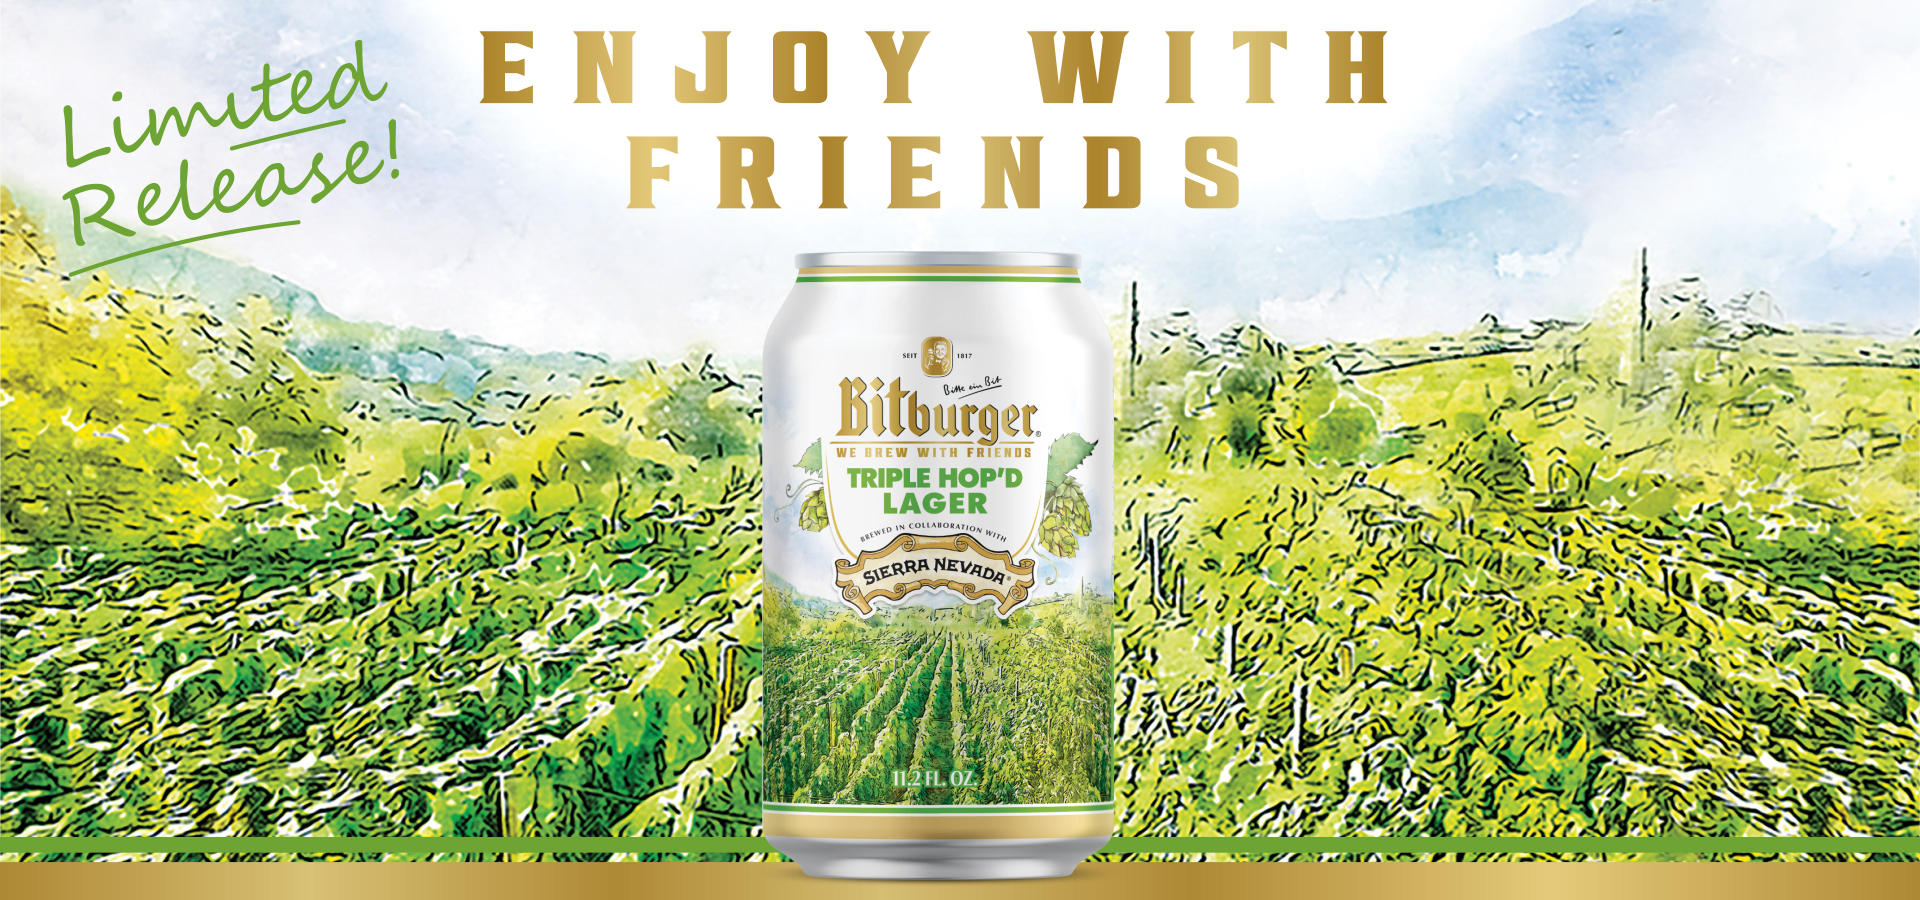 Bitburger Brewery And Sierra Nevada Collaborate On Triple Hop'd Lager For March Release